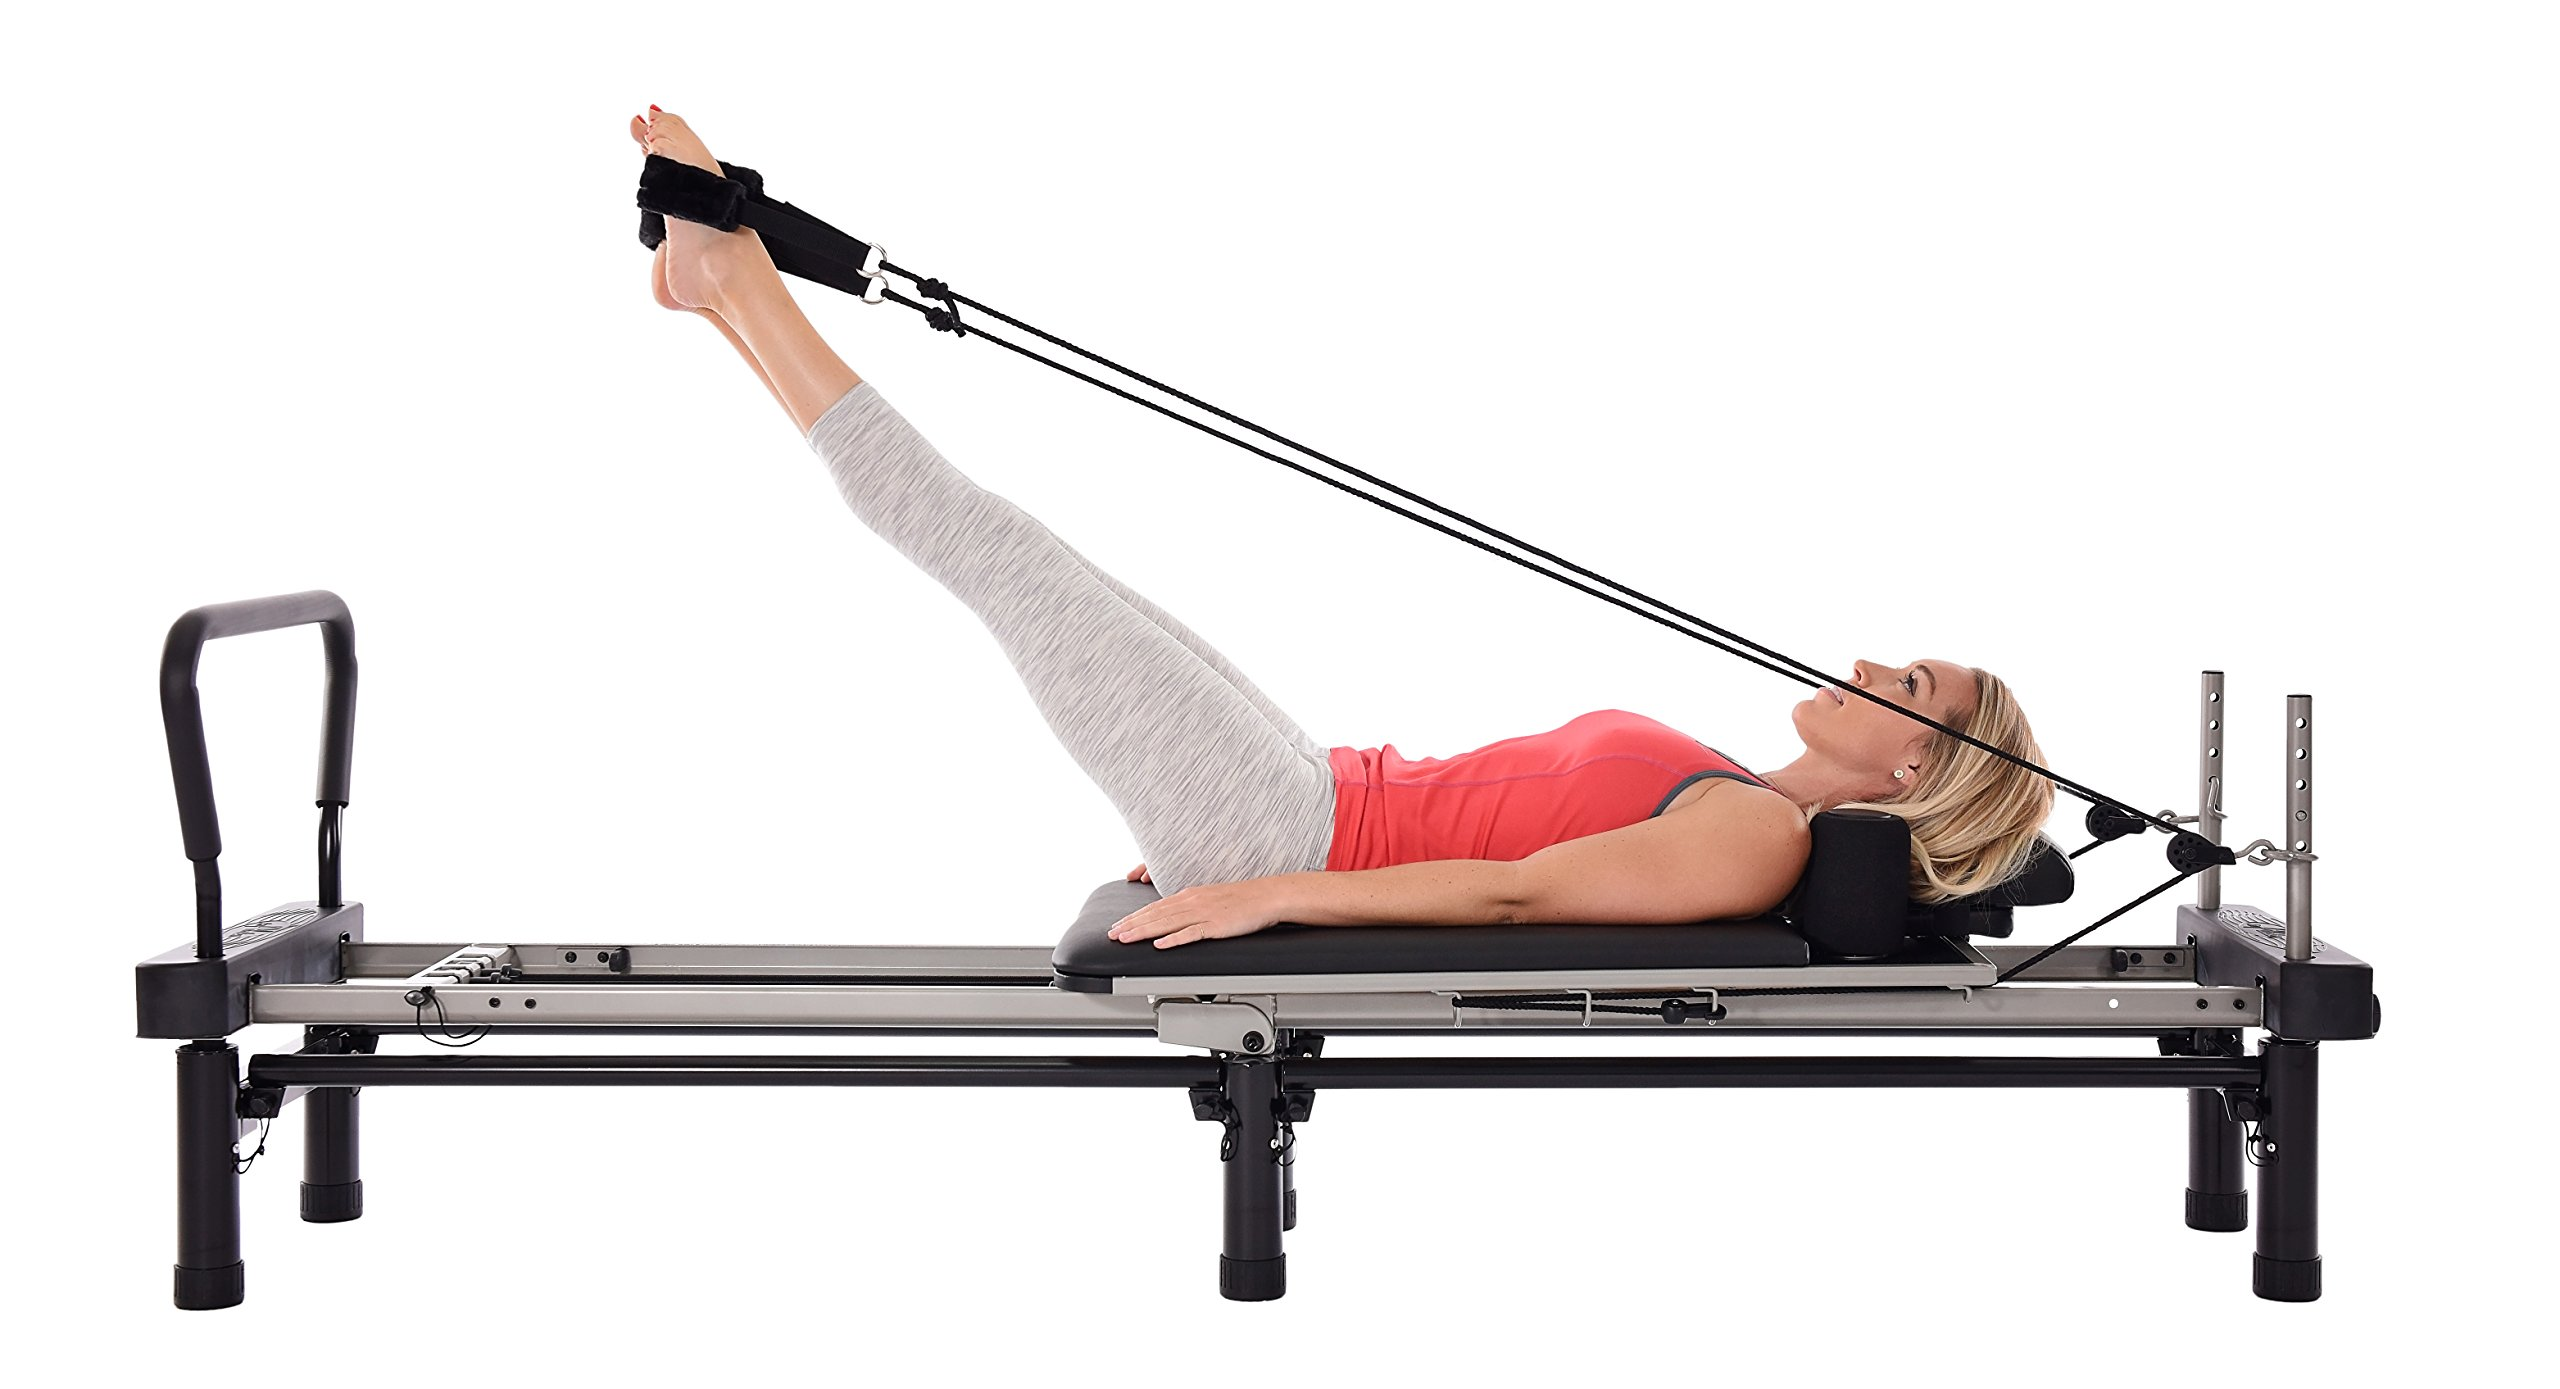 Stamina AeroPilates 700 Premier Reformer with Stand, Cardio Rebounder, Neck Pillow and DVDs by Stamina (Image #3)